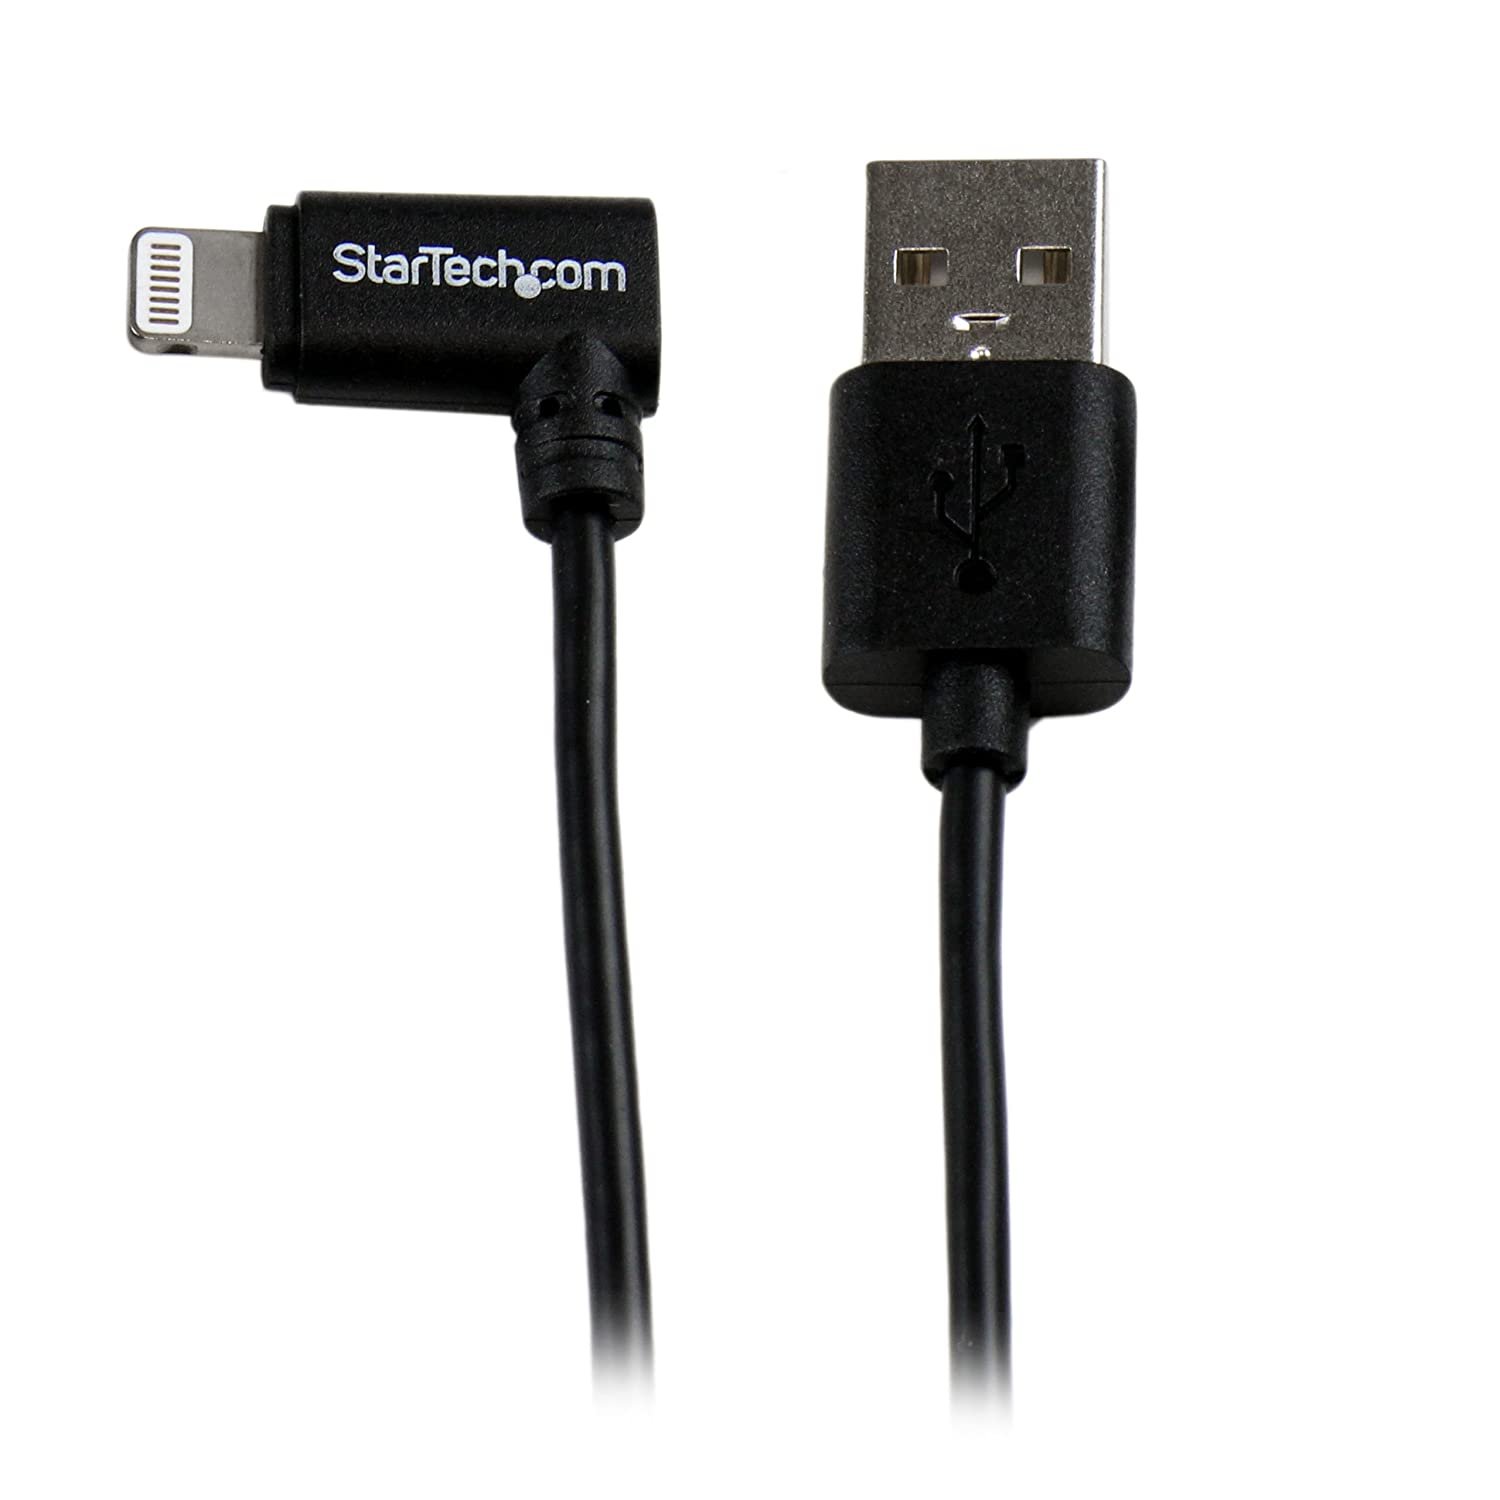 2m 6ft Angled Black Apple 8-pin Lightning to USB Cable for iPhone iPod iPad - Angled Lightning Cable - Charge & Sync - 2 m